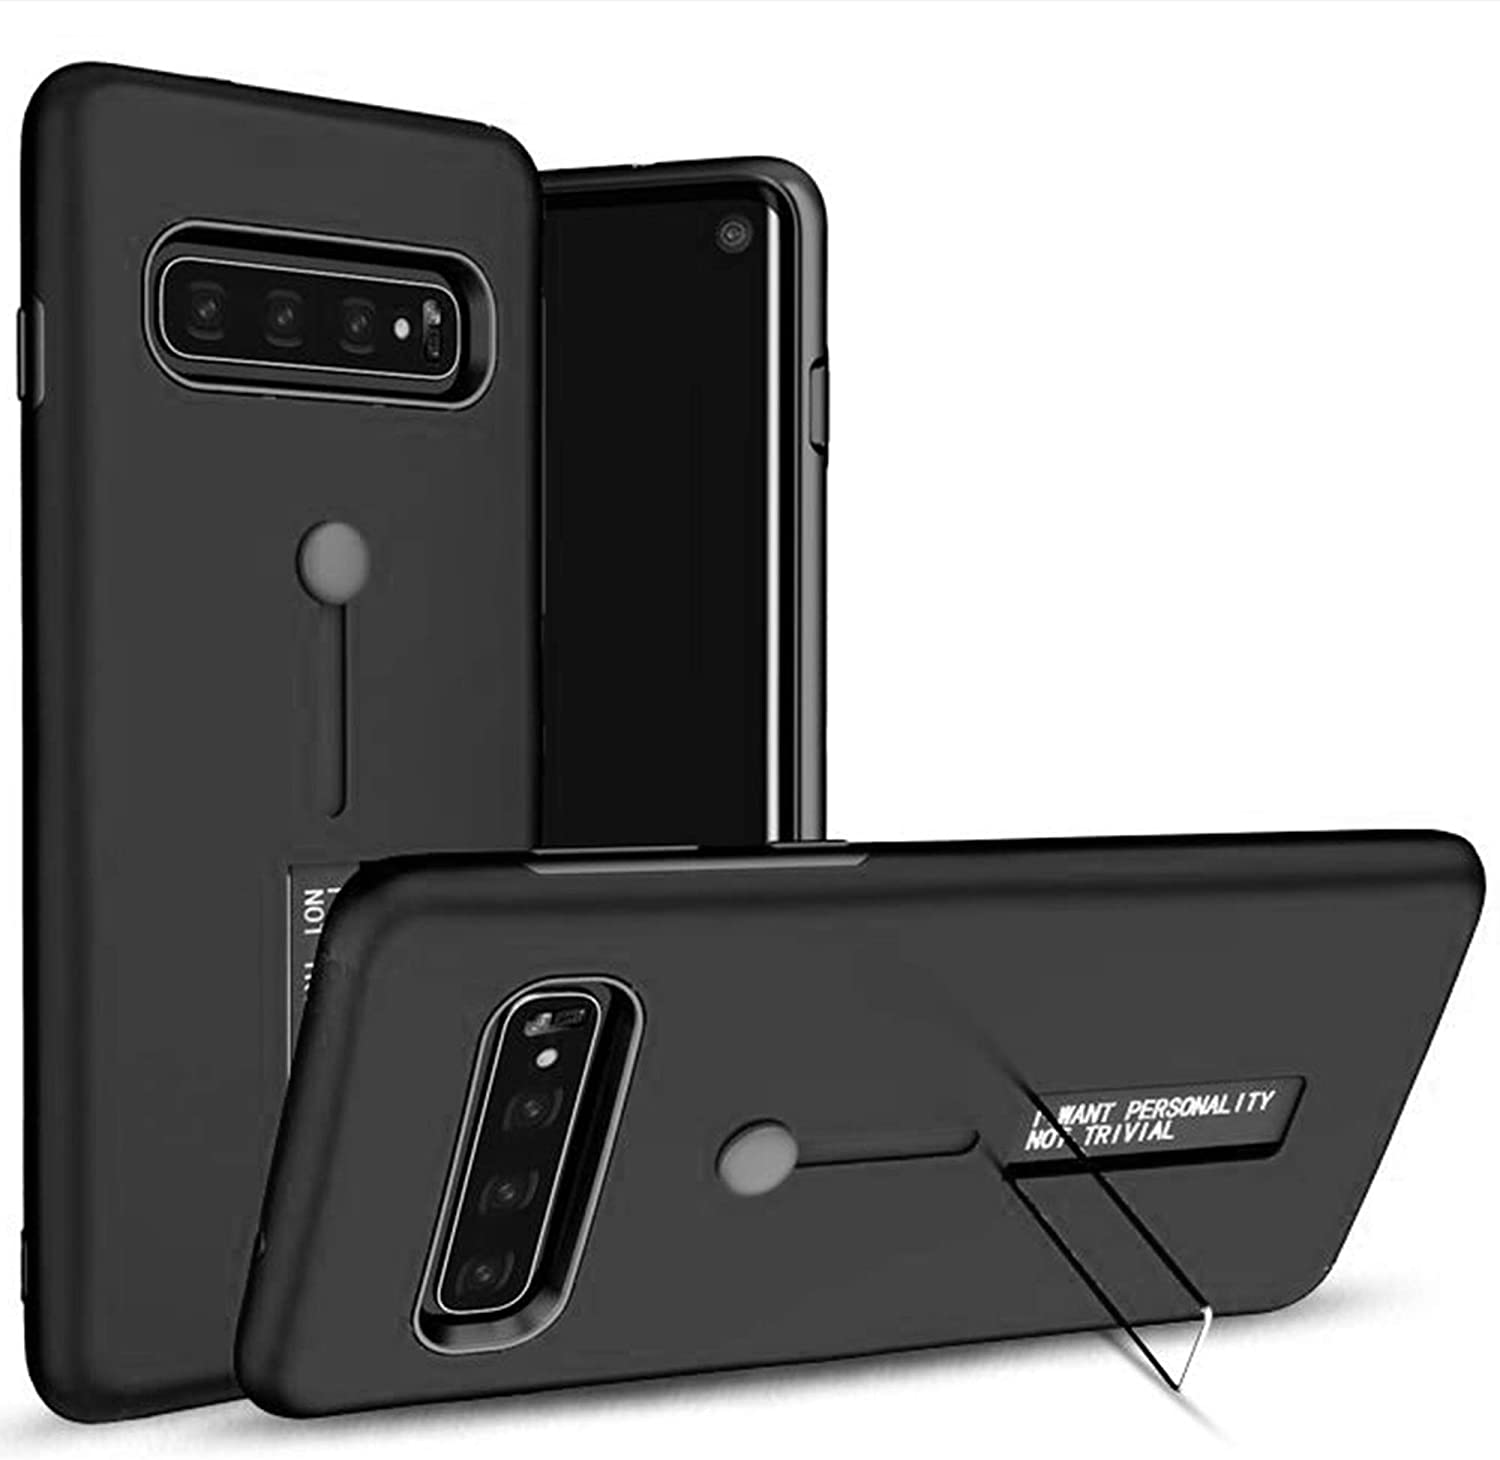 NFarmour S10 Case with Kickstand -Samsung Galaxy S10 Case - Full Body Cover Case Shockproof for S10 Phone Case Ultra Slim Rugged Armor (Black, S 10)